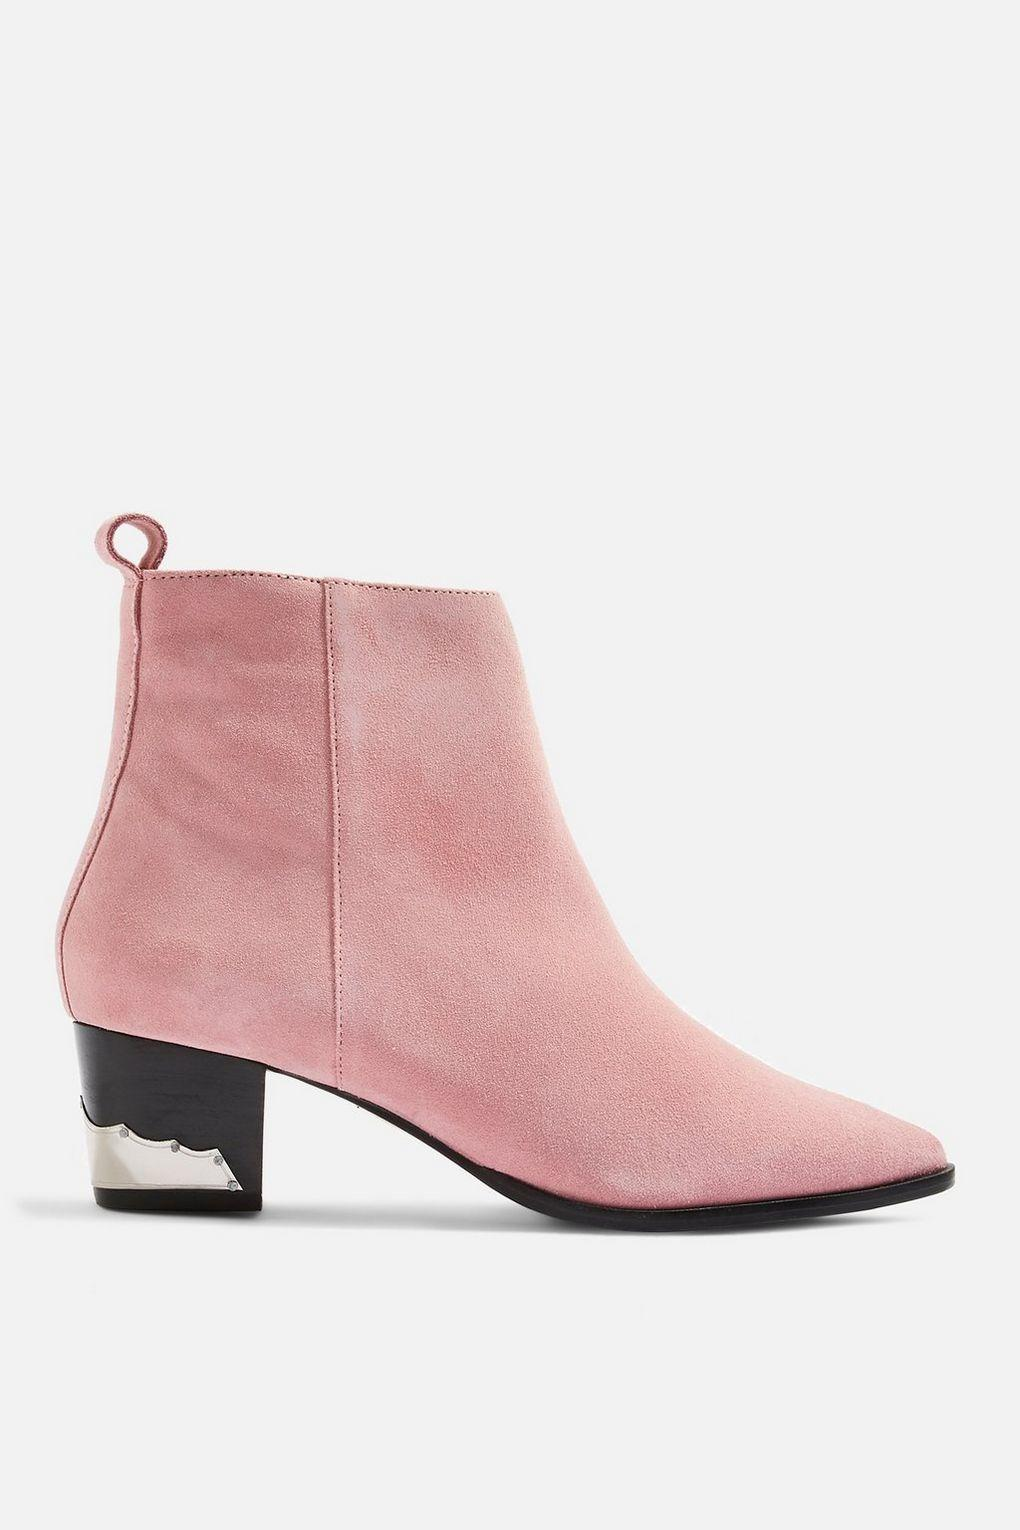 Best Ankle Boots for AW18